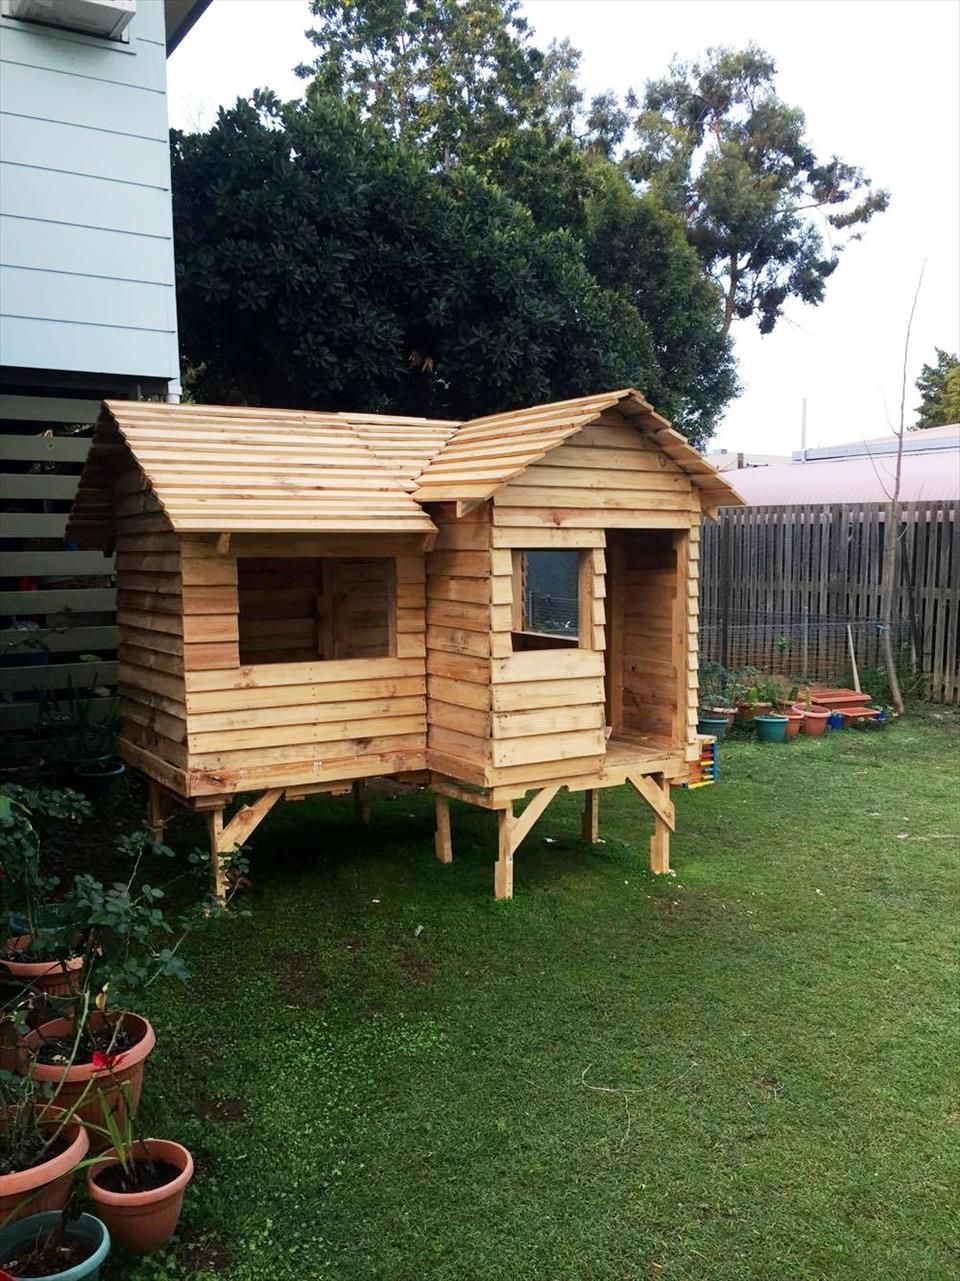 cubby-house-made-from-pallets.jpg (9601281)